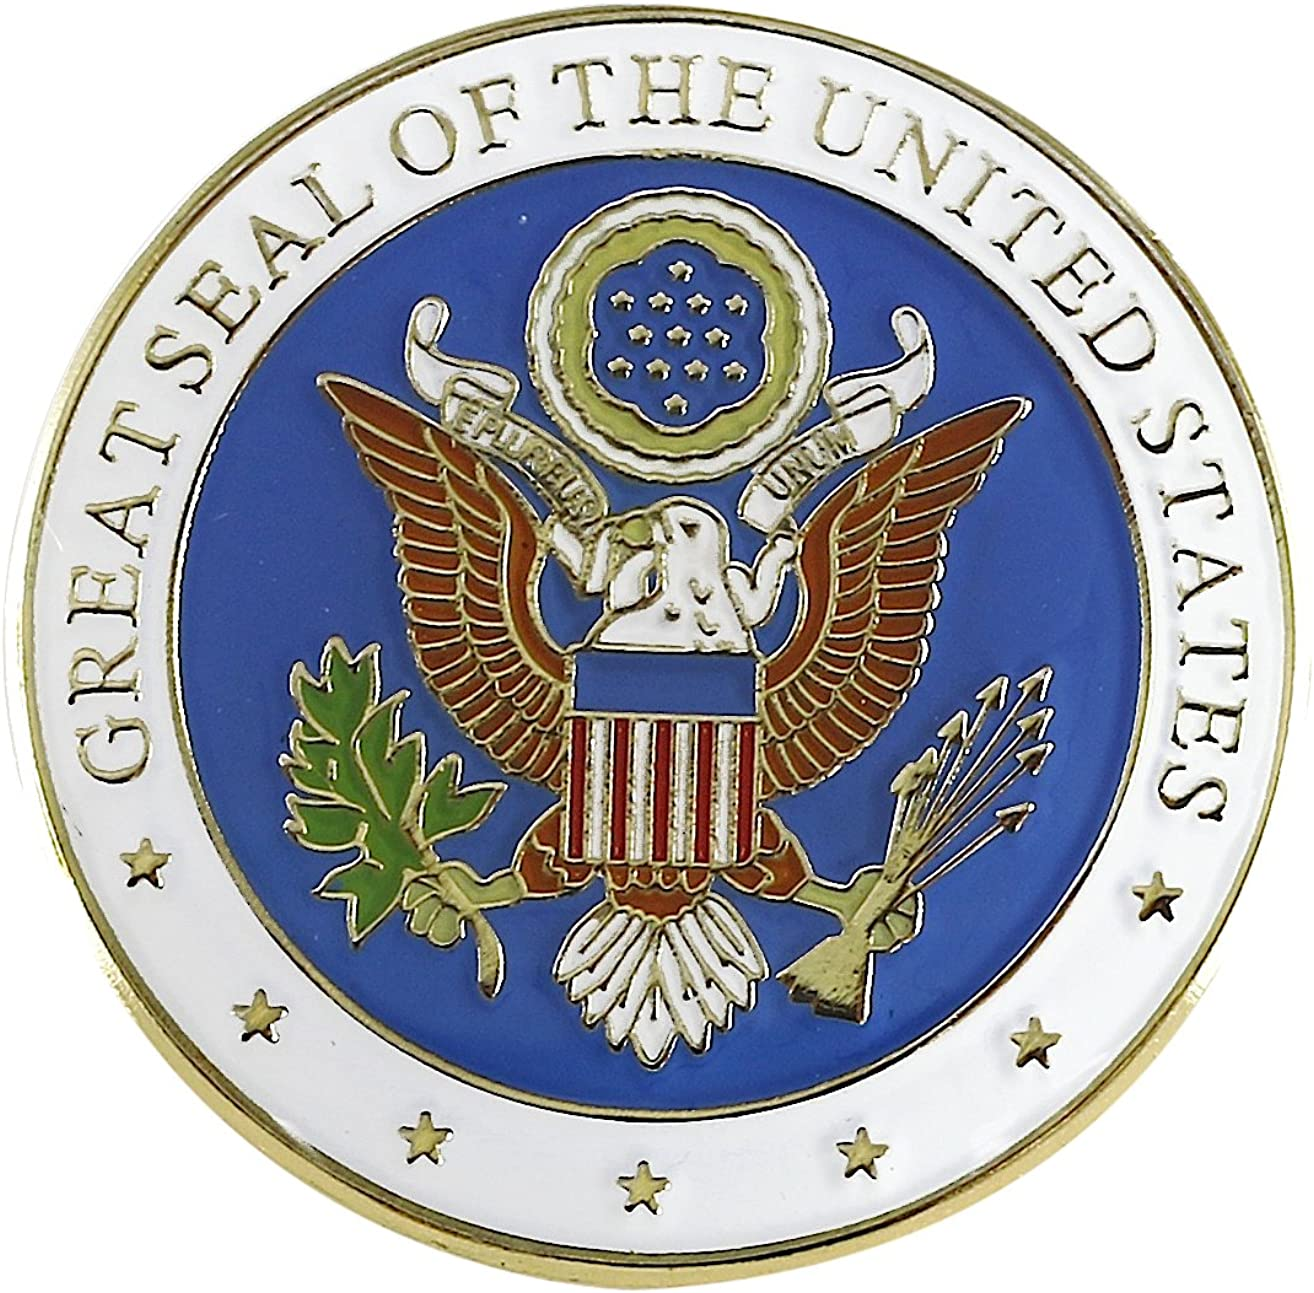 Great Seal of the United States Enamel Lapel Pin By Pinnacle Designs